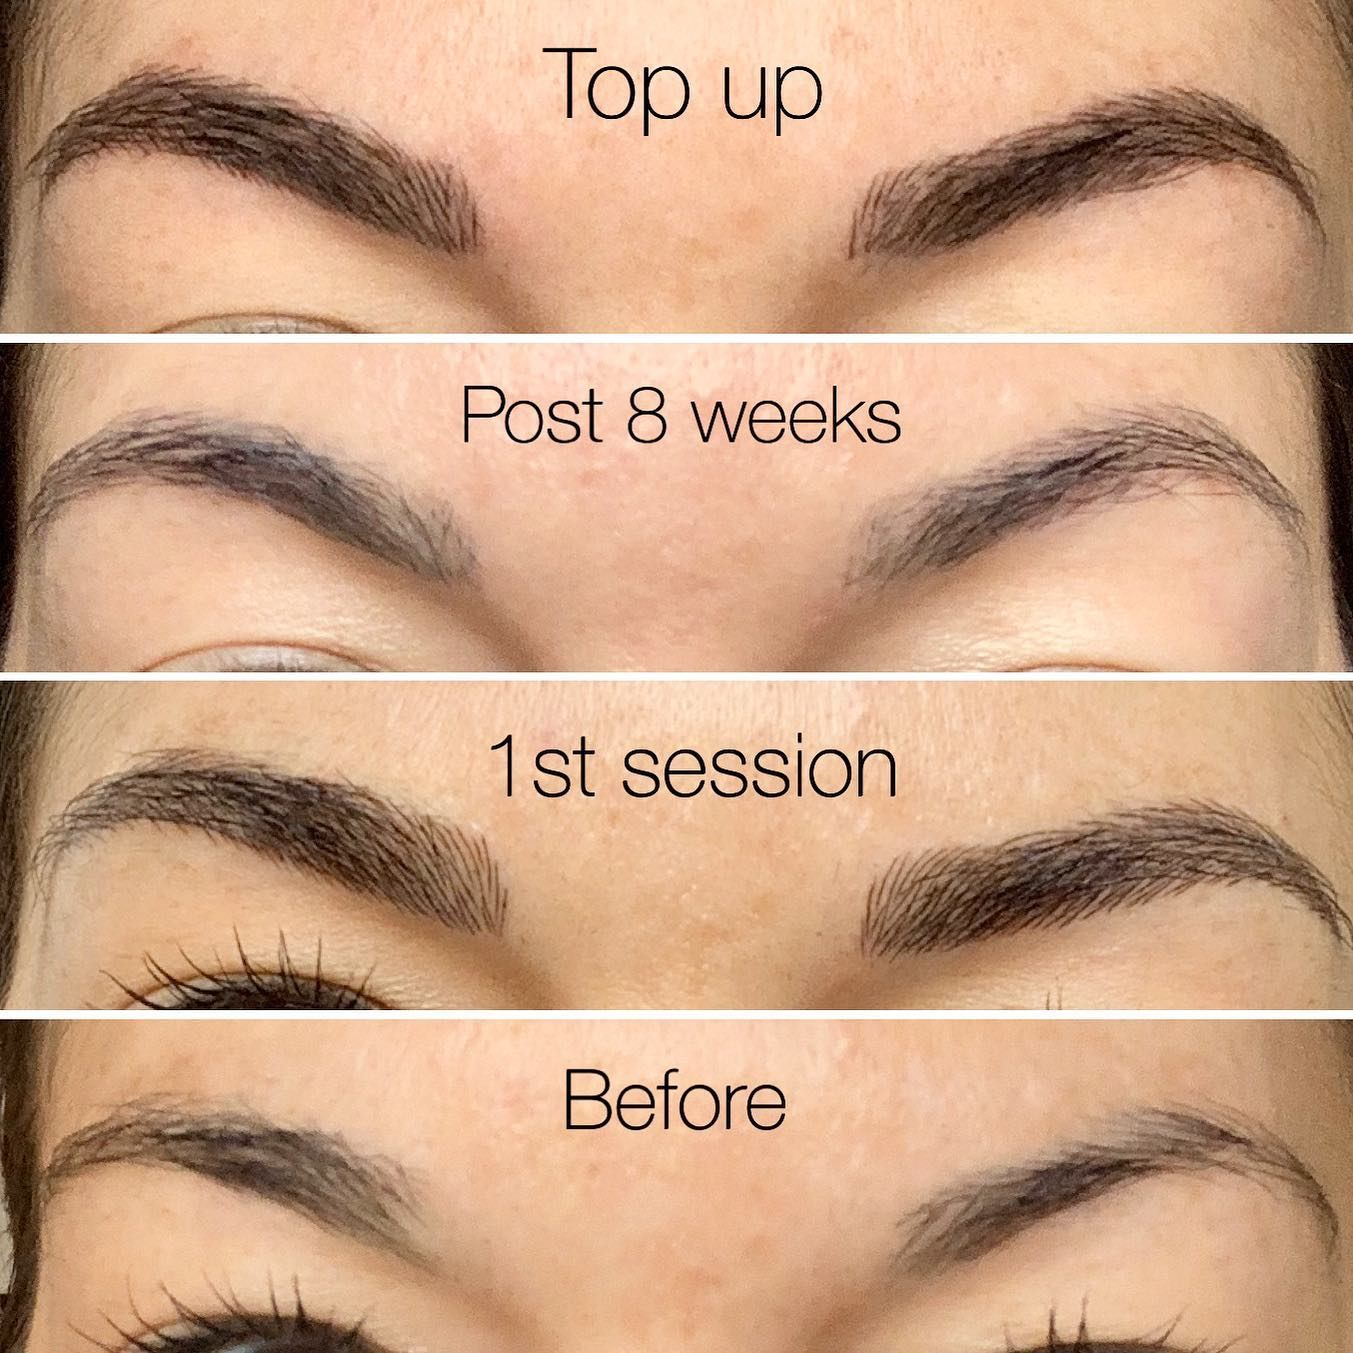 Here Are The Stages Of My Own Microbladed Eyebrows Not My Work As You Can See